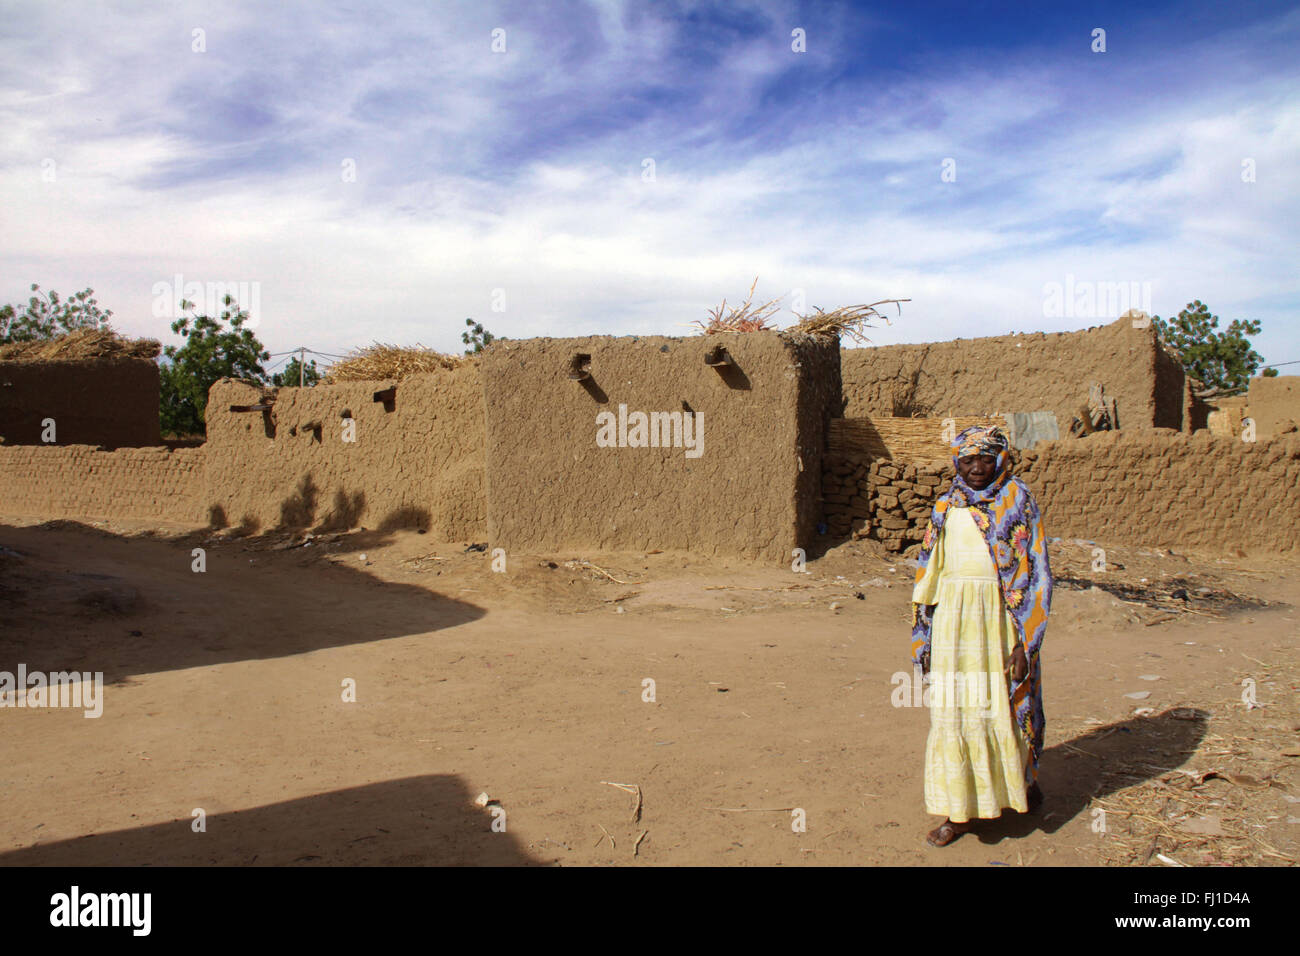 Burkina Faso people and places - Stock Image